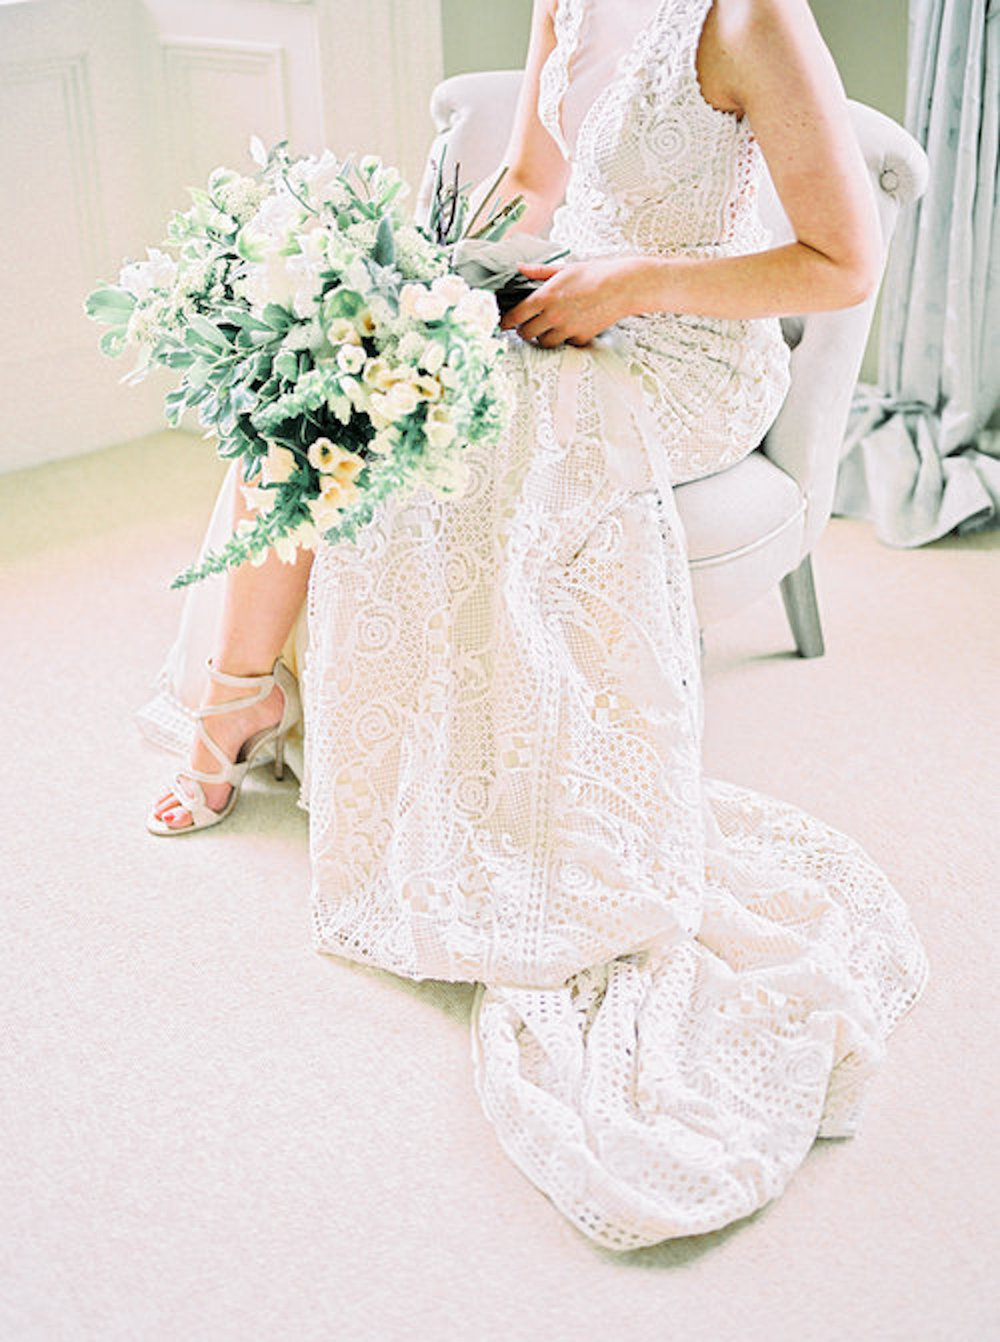 Luxury+Wedding+Planner+UK+_+A+Serene+&+Feminine+English+Country+House+Wedding+_+White+and+Silver+Toned+Green+Neutral+Tones+Rutland+_+Katie+Julia+Photography+Serene+Femininity+Image+4.jpg